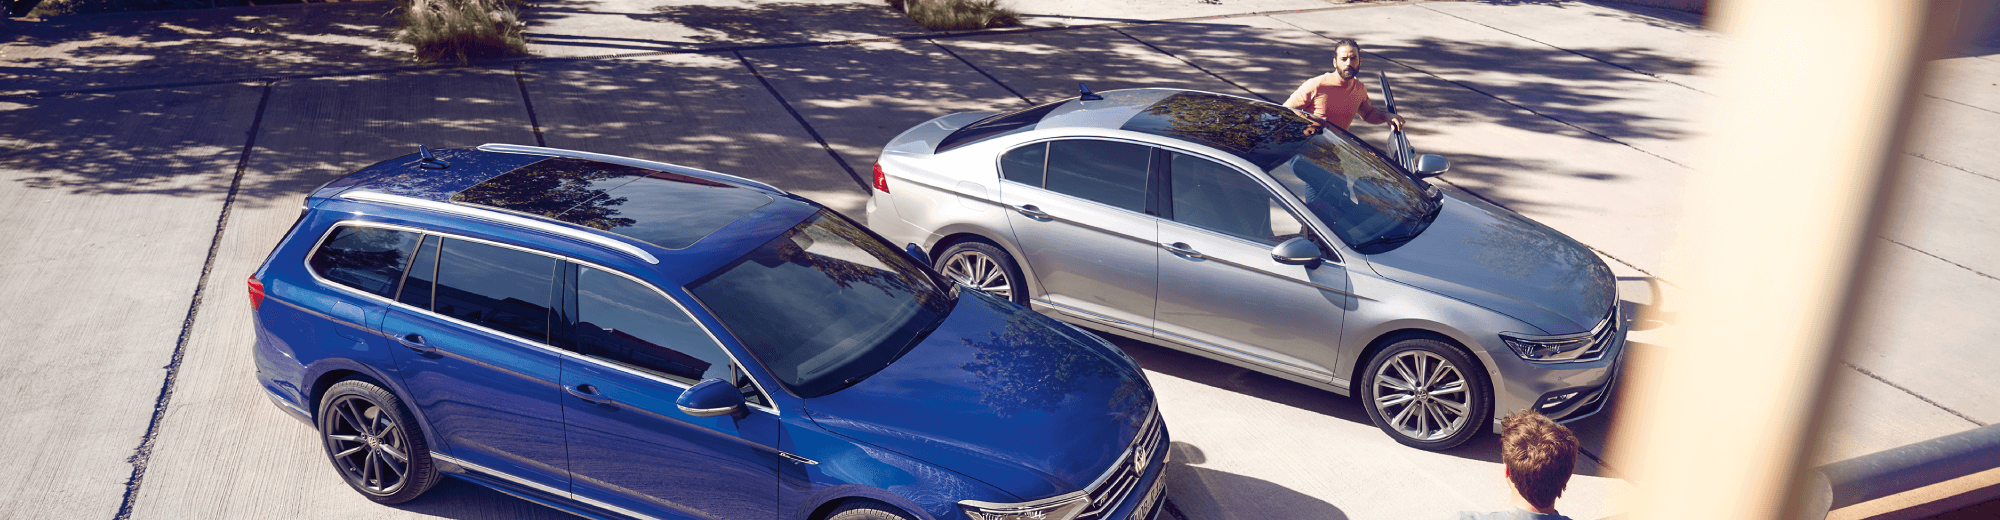 Two people prepare to depart in the New Passat and New Passat Alltrack